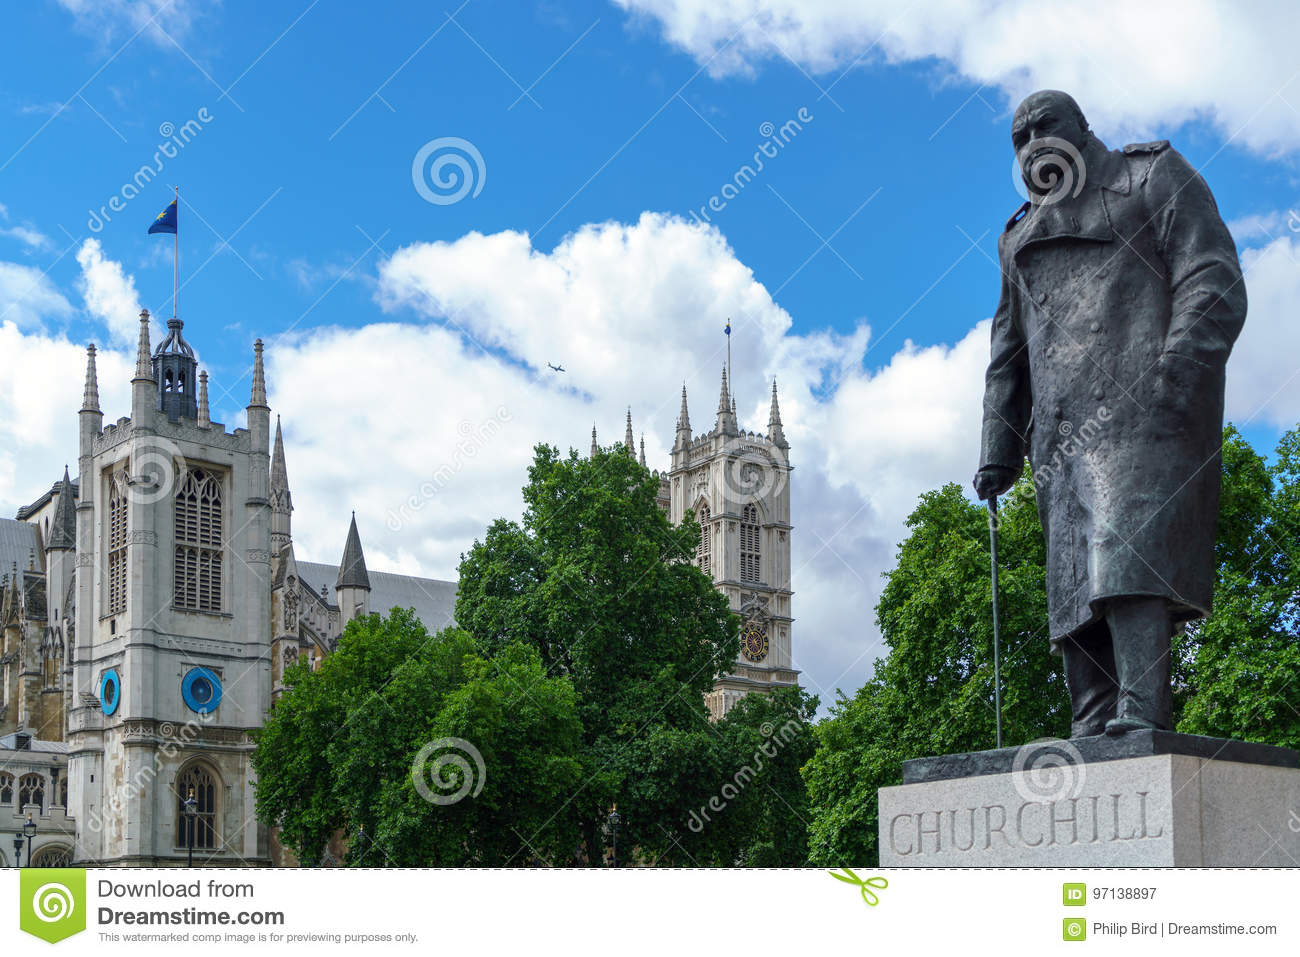 LONDON - 30. JULI: Statue von Winston Churchill in London im Juli